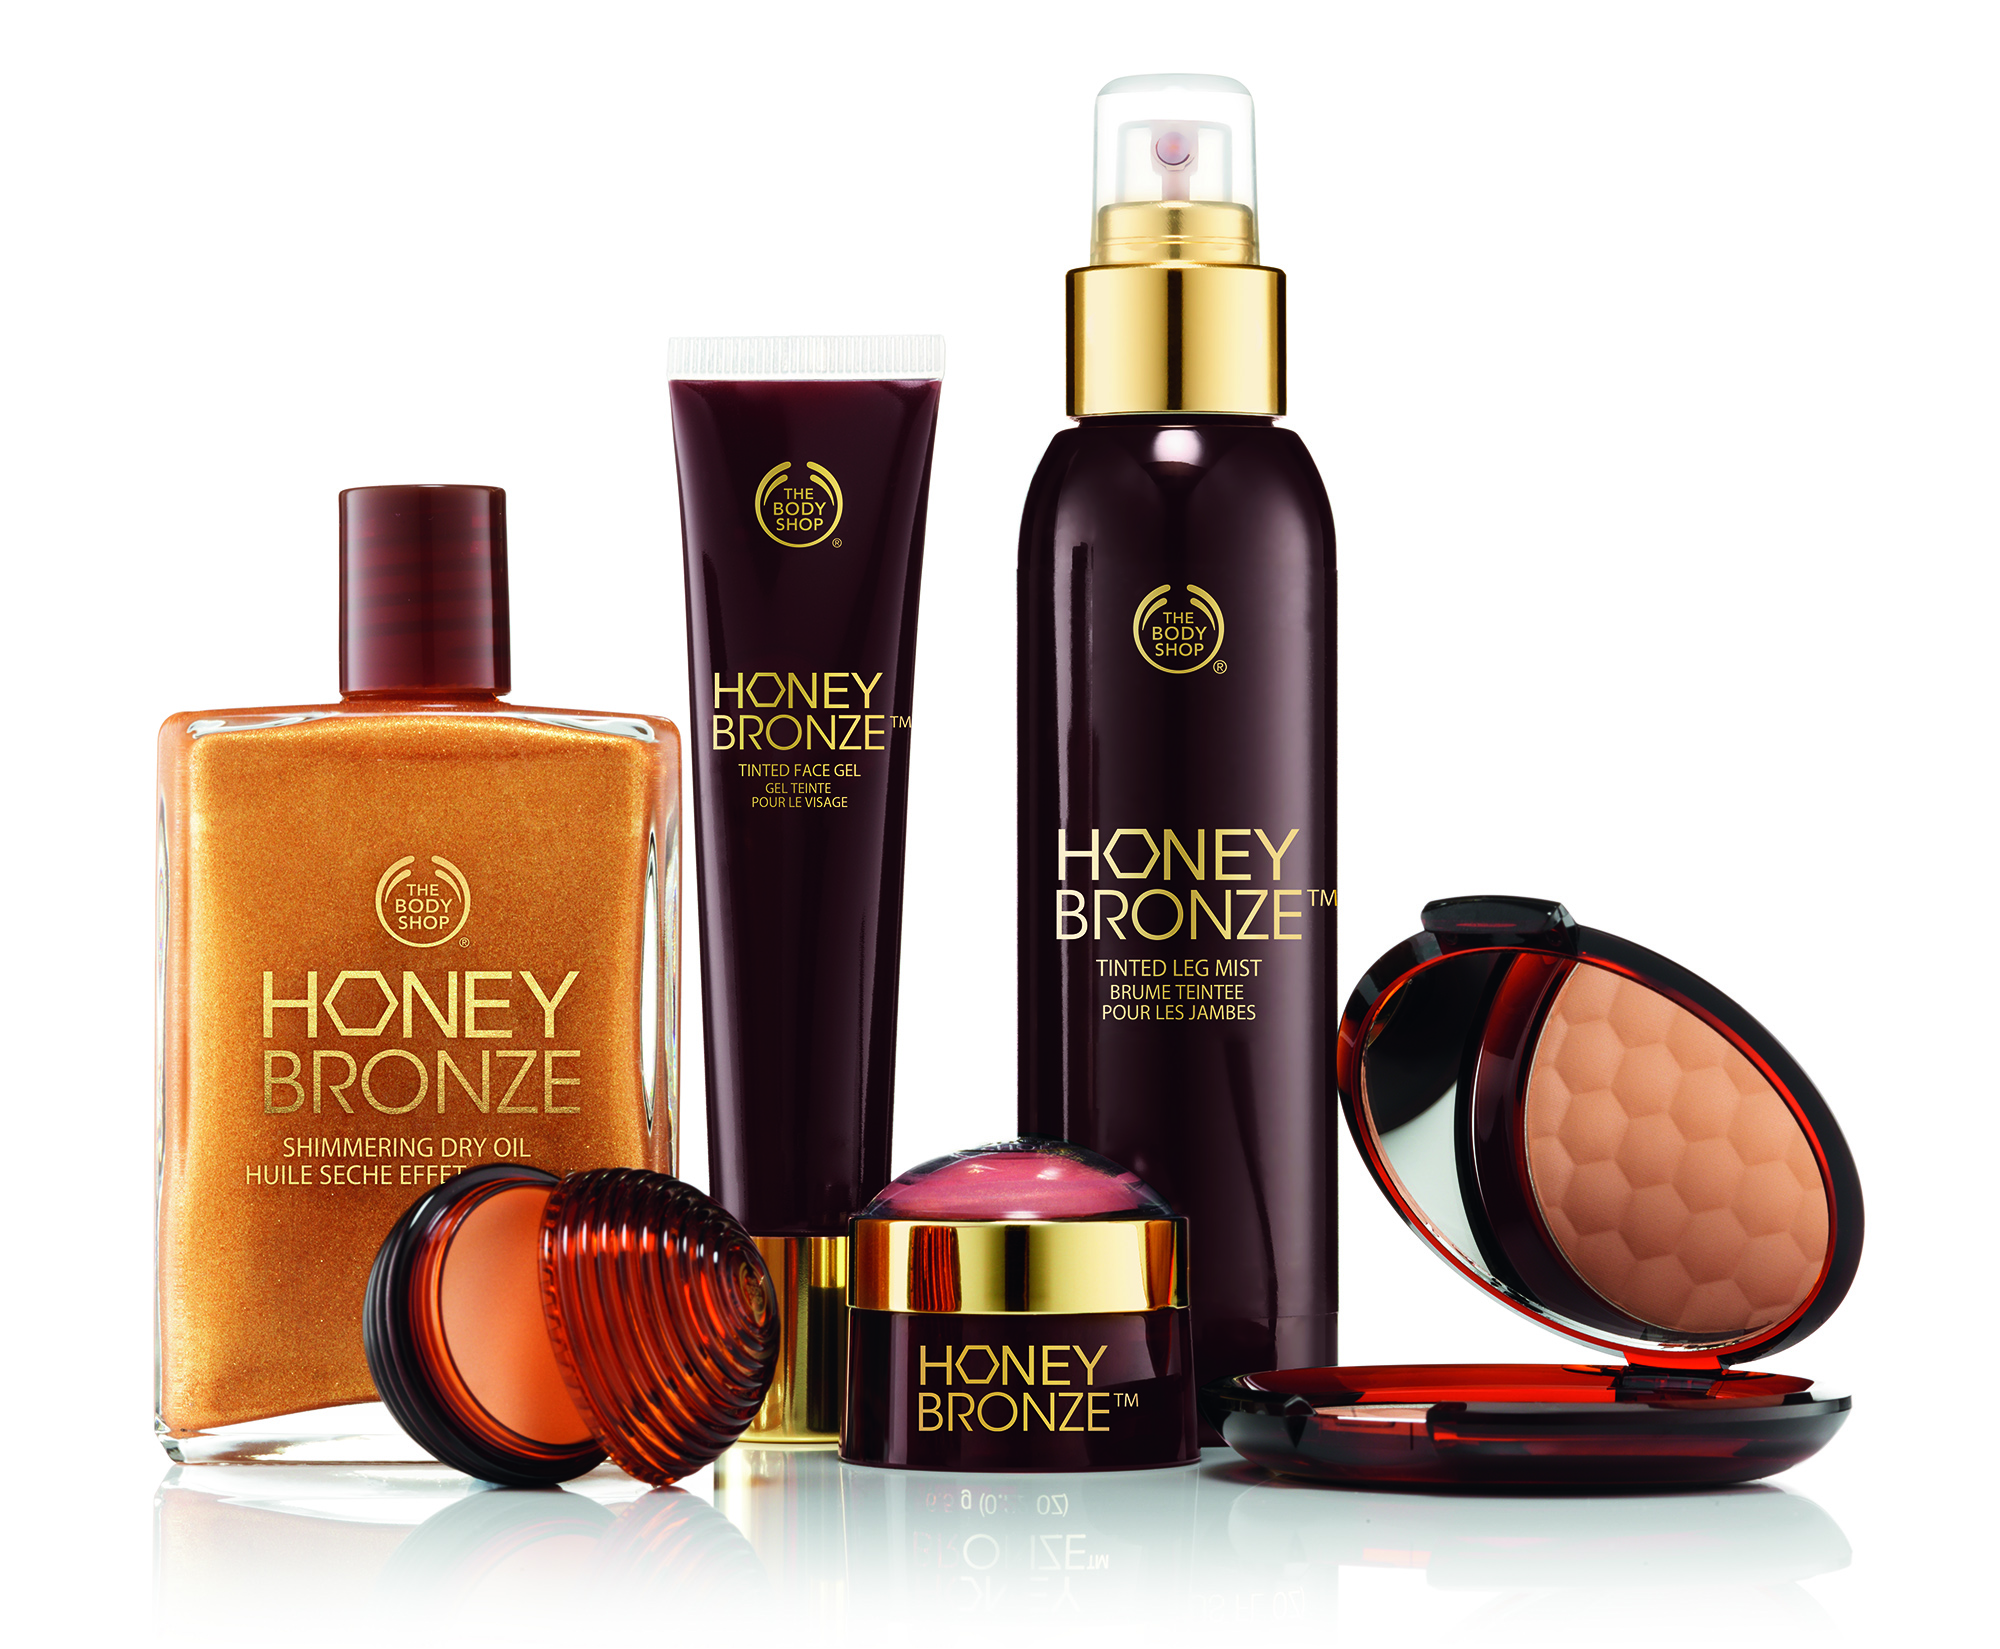 Honey Bronze Full Range